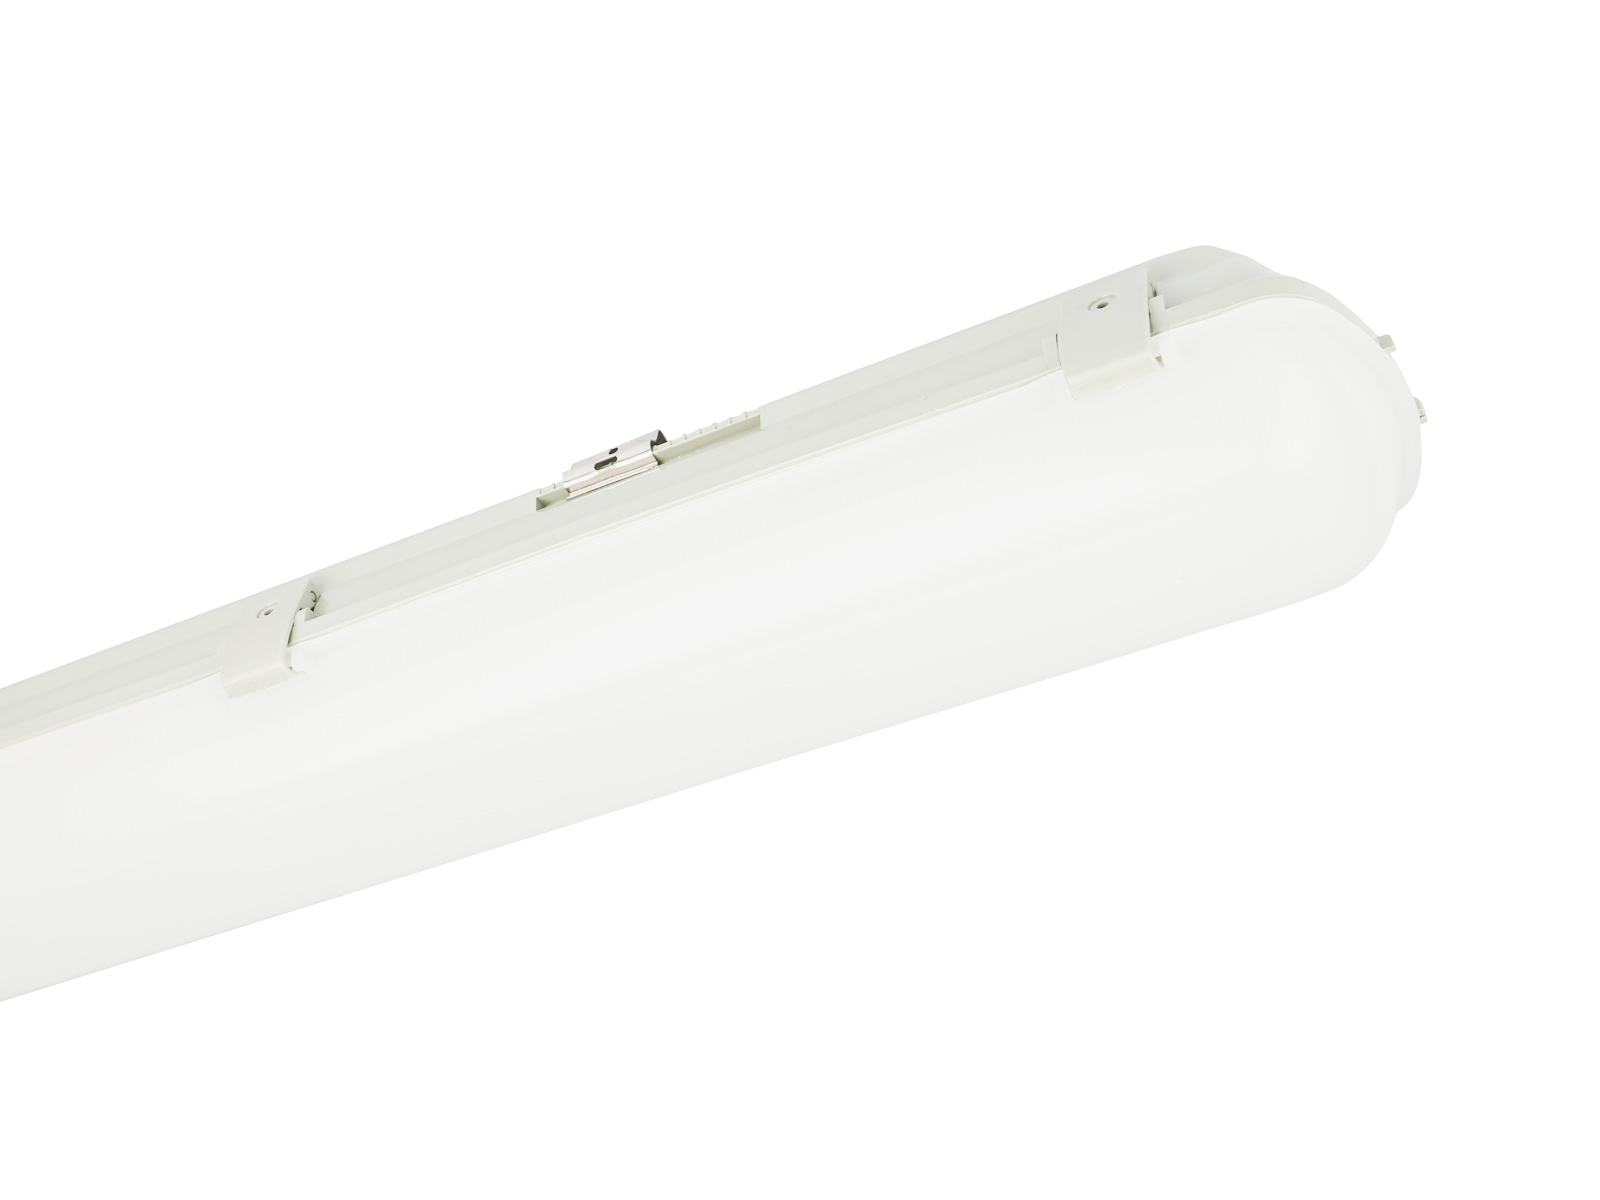 TRP02 20W 40W 50W Tri-Proof Light LED Vapor Tight Light